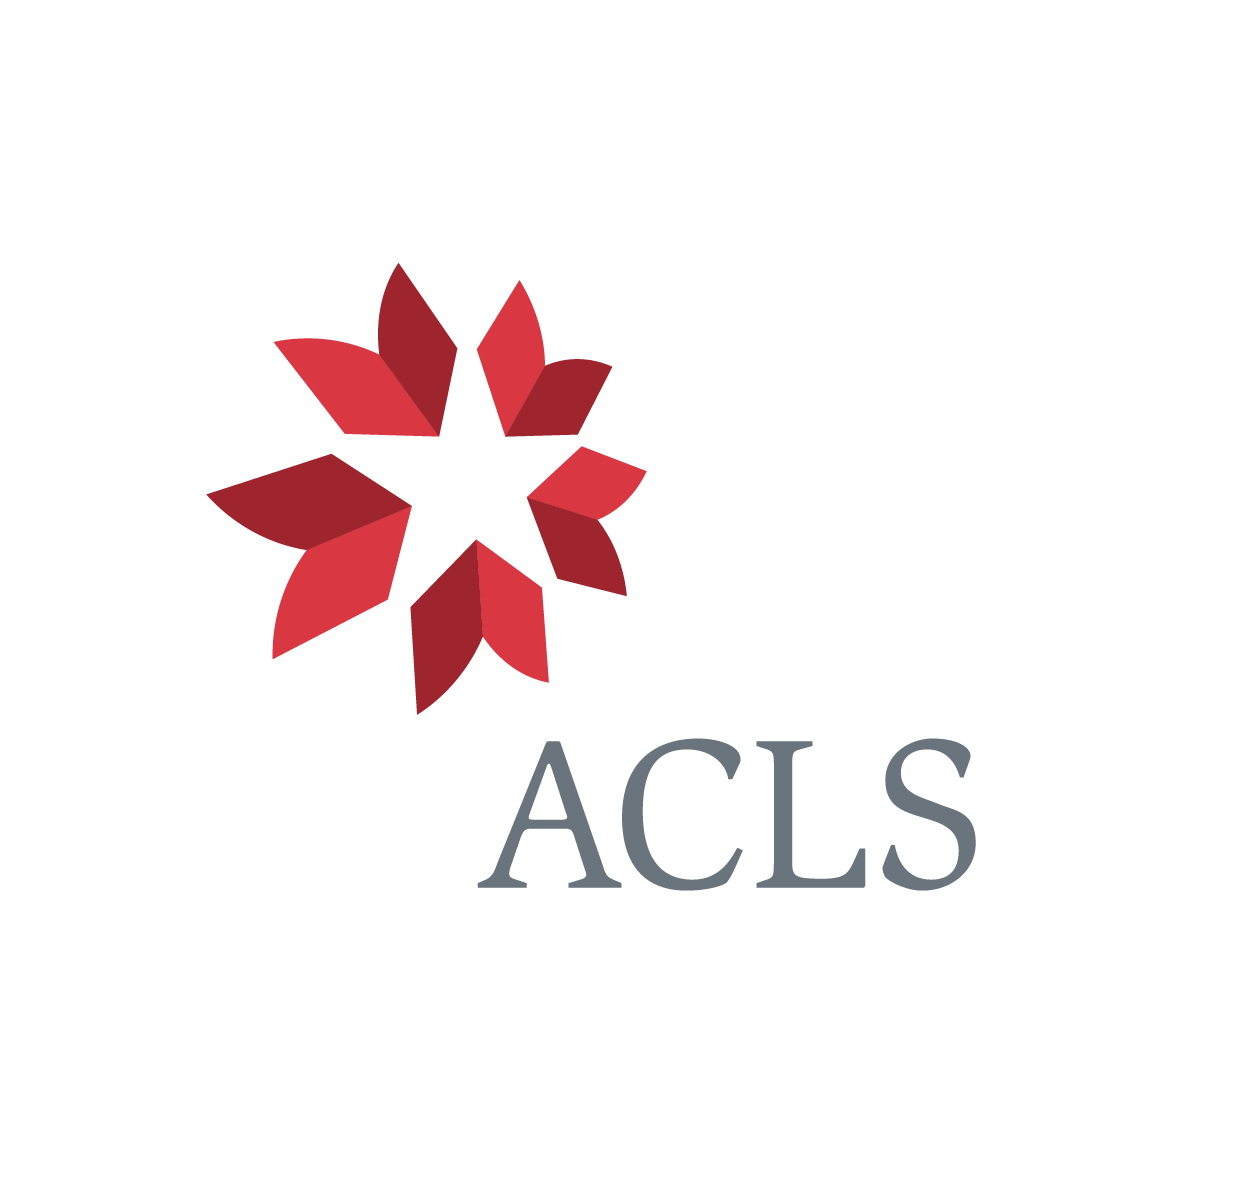 Project image 1 for Identity, American Council of Learned Societies